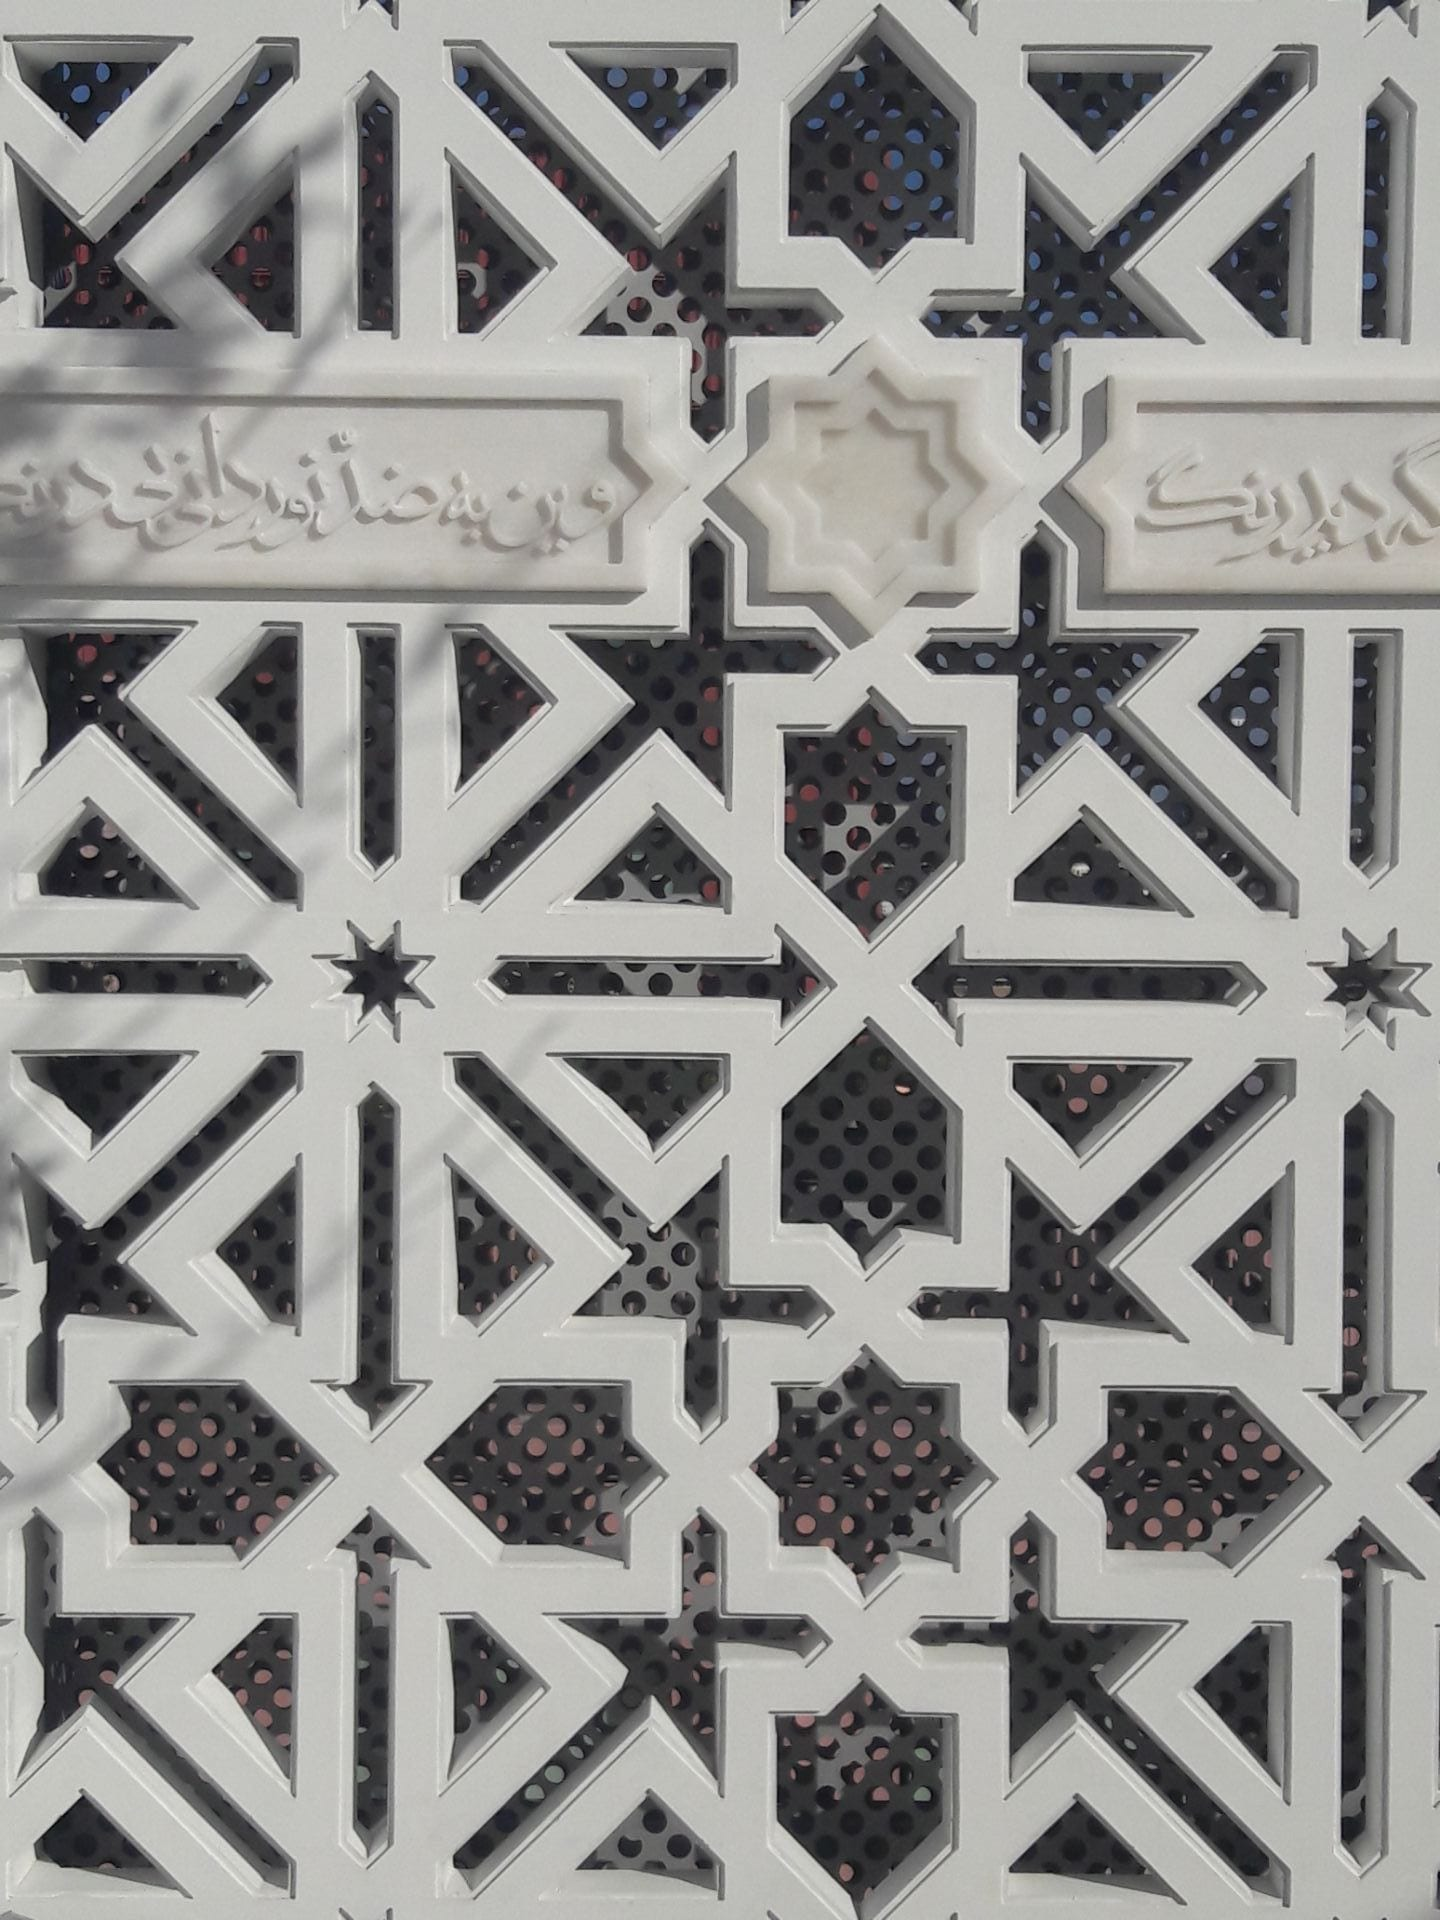 Detail from the white trellis in the Garden of Light with 8 pointed star design and extract from the Qu'ran.